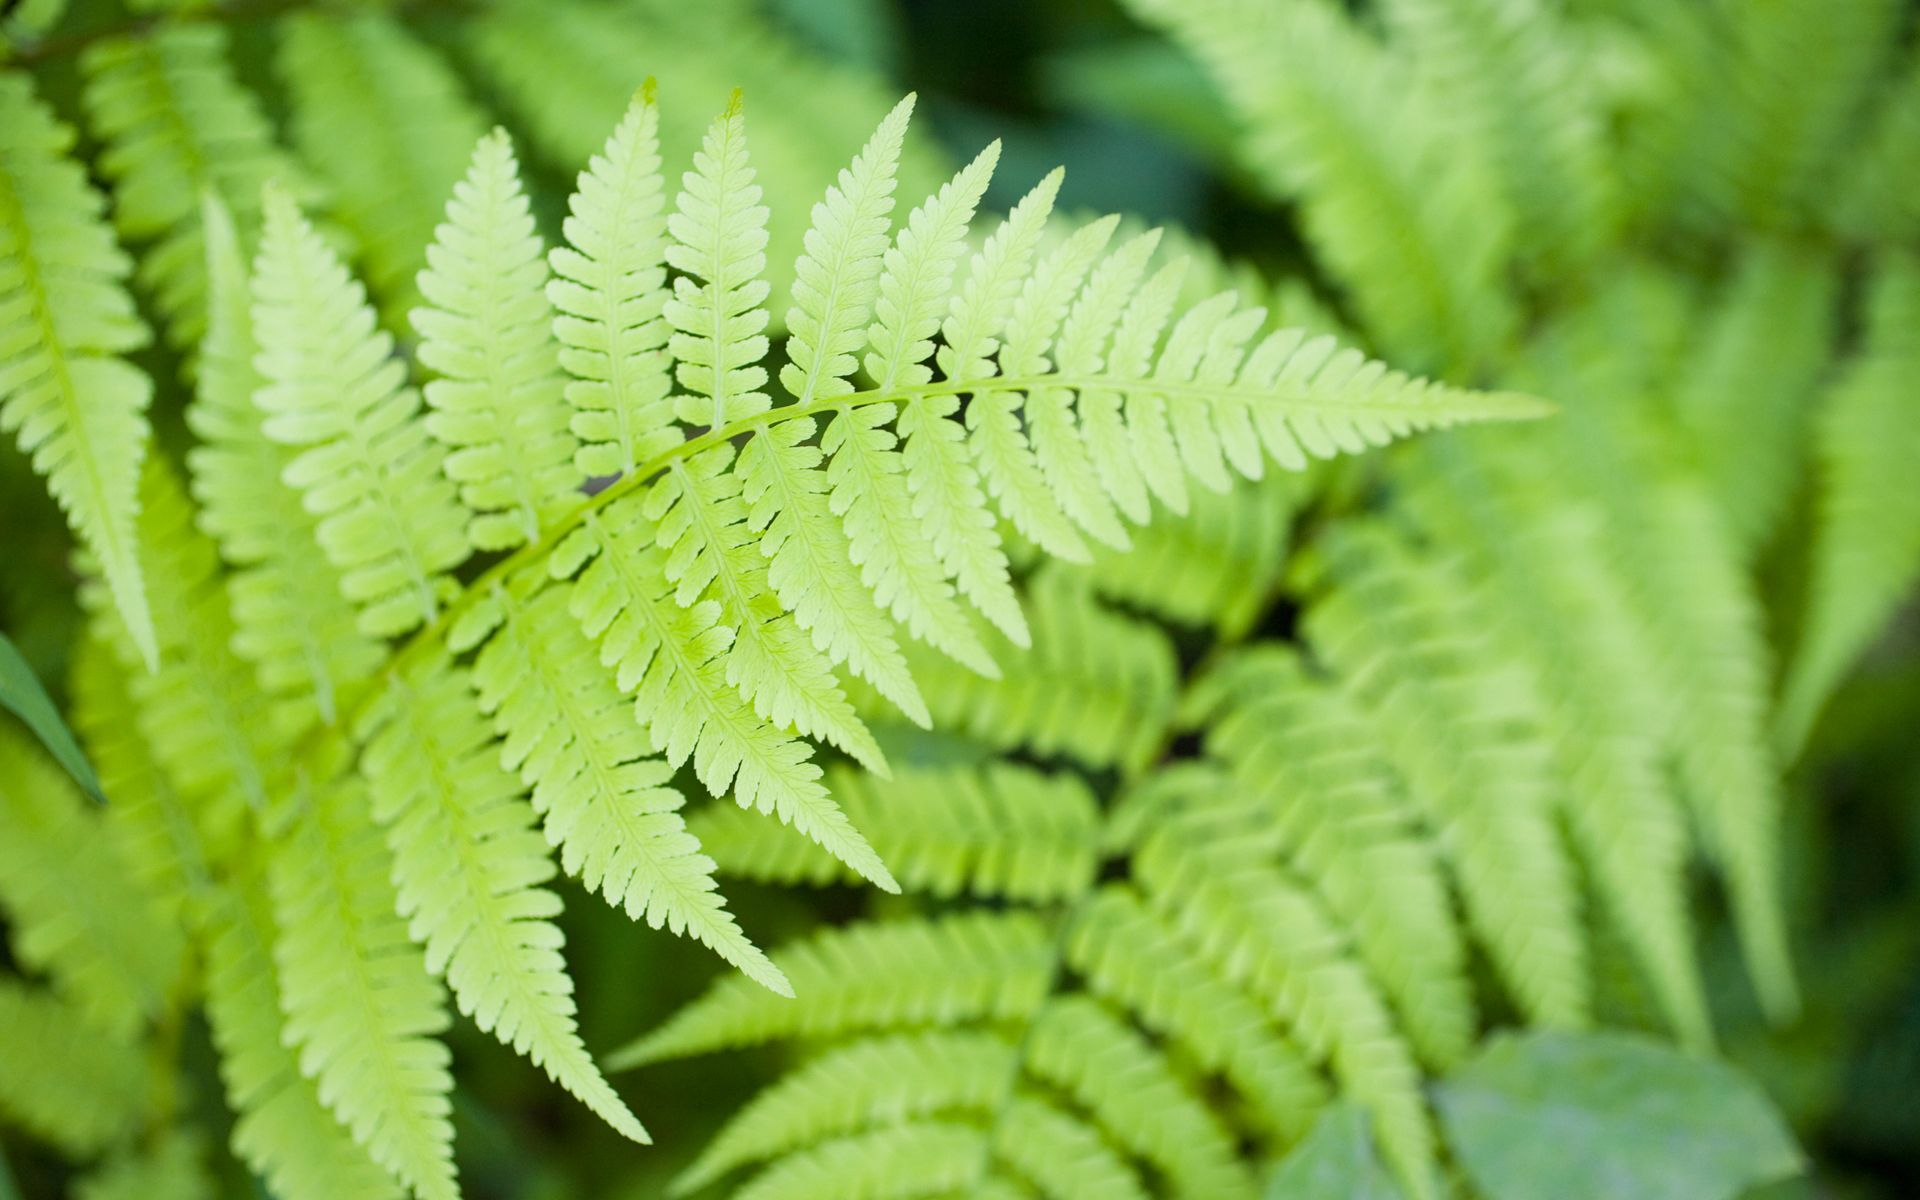 1920x1200 Fern leaf desktop wallpaper - HD Wallpapers | Epic Car Wallpapers ...